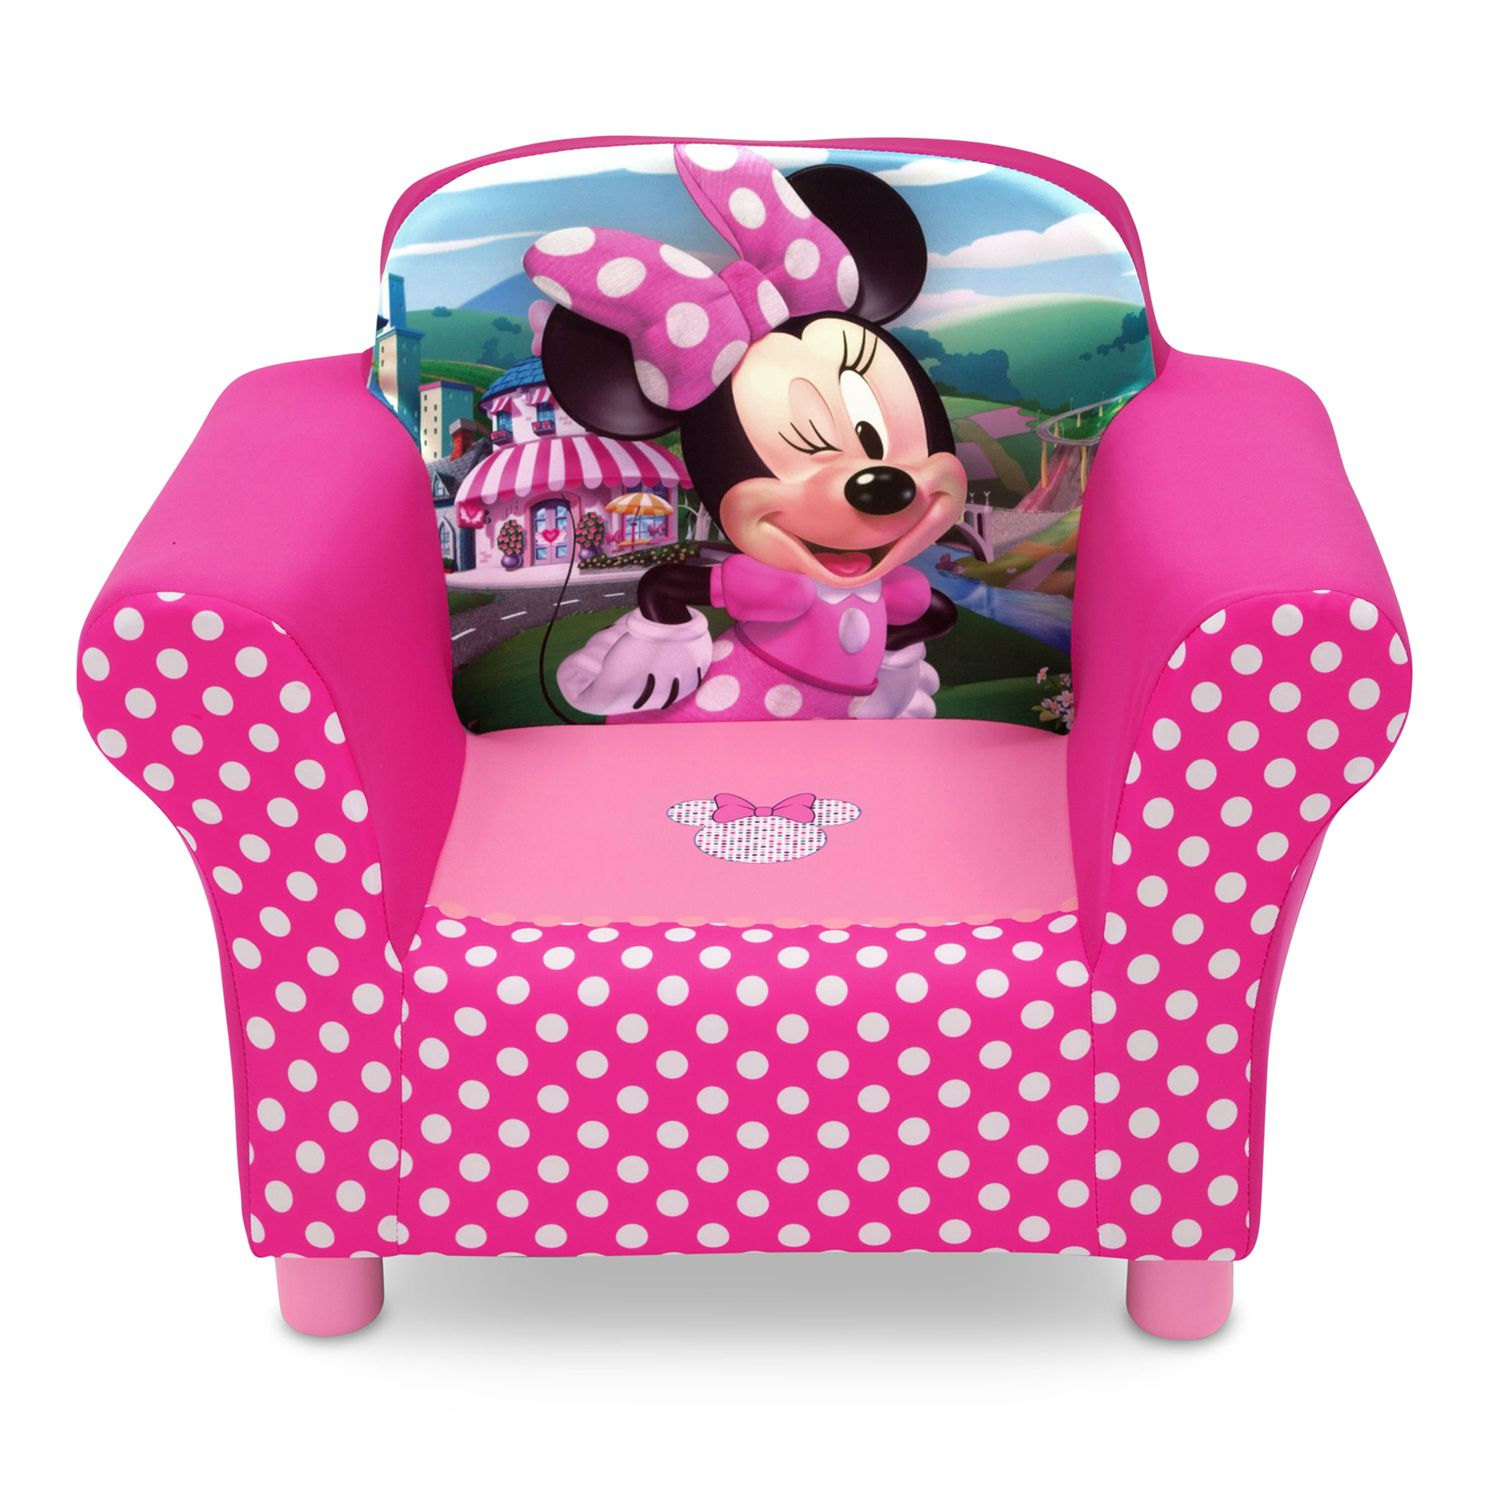 Disneyu0027s Minnie Mouse Upholstered Chair By Delta Children